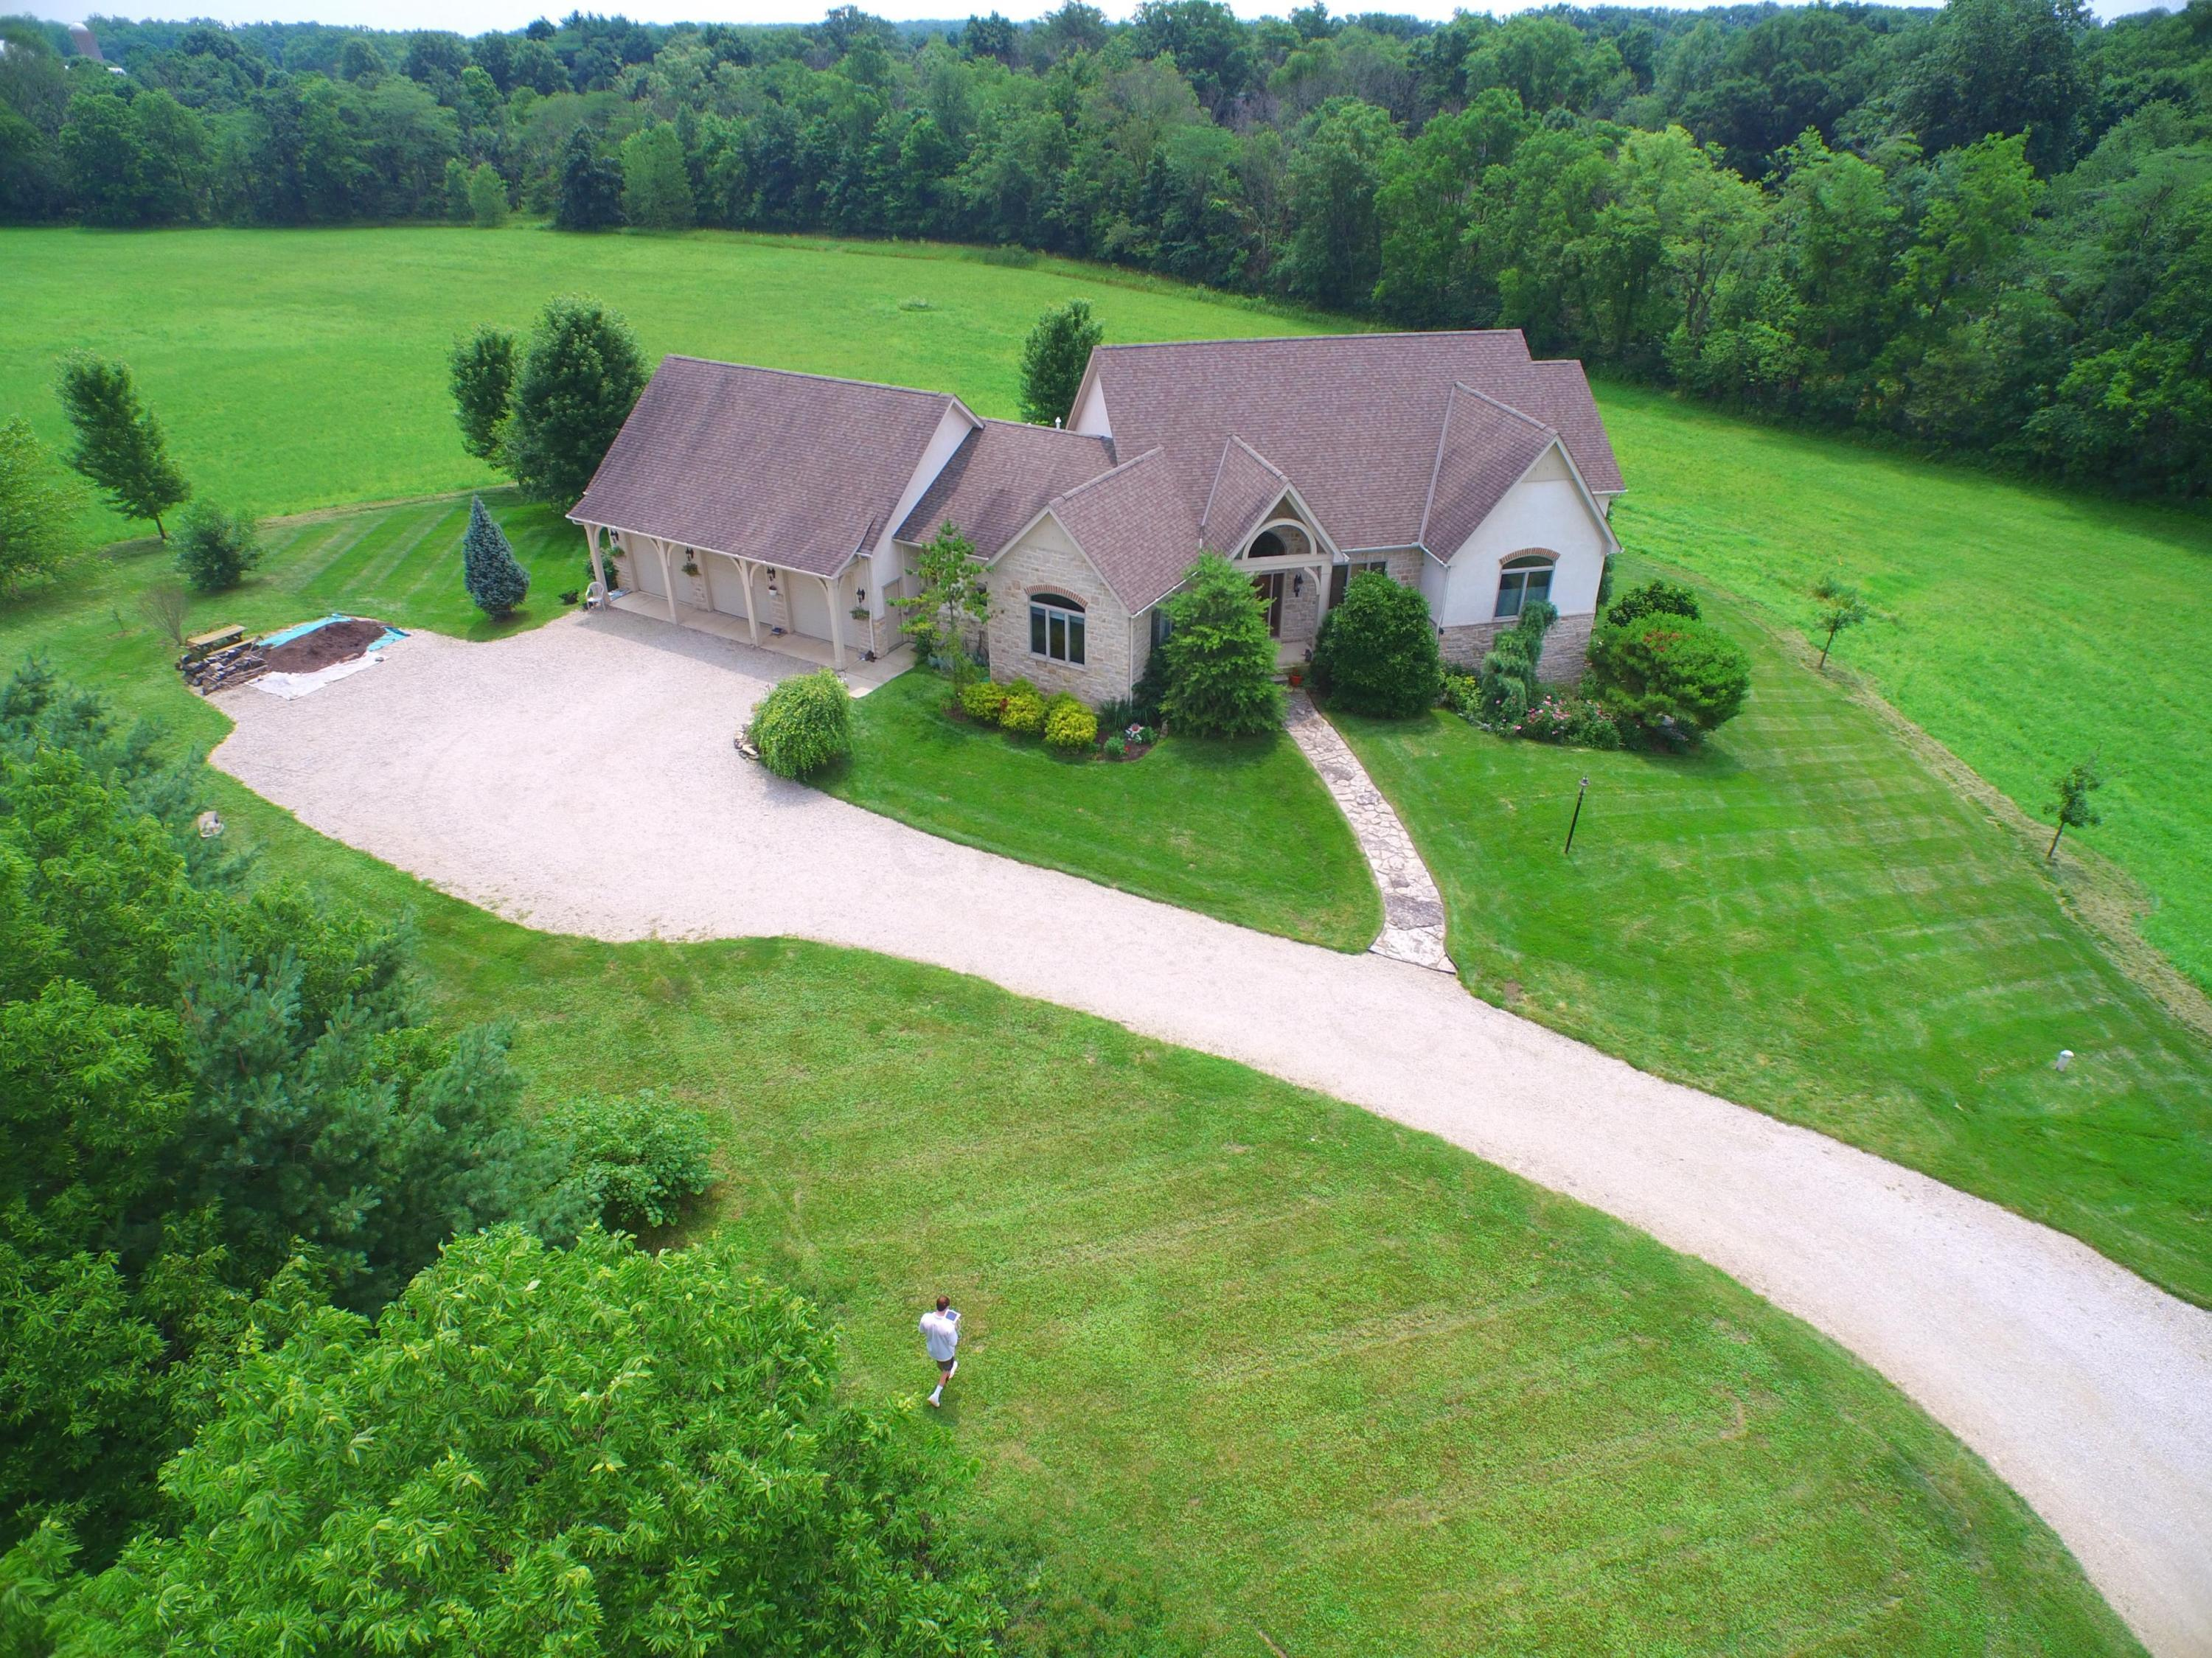 Single Family Freestanding for sale 10319 Larcomb Road, Marysville, OH 43040, MLS# 220037823